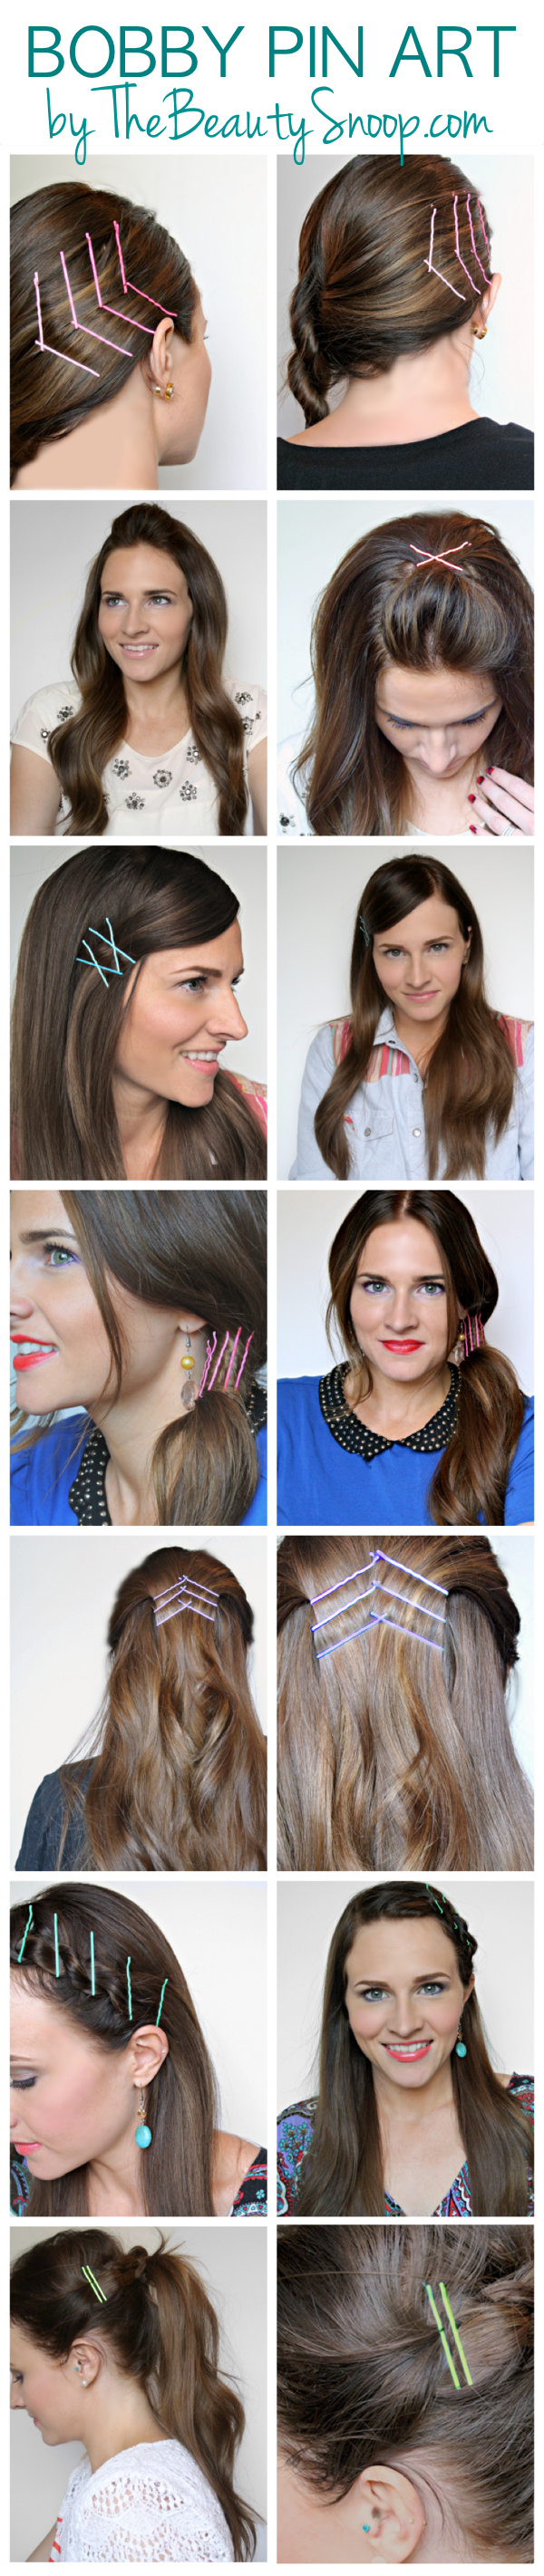 Fashion week How to colored wear bobby pins for girls